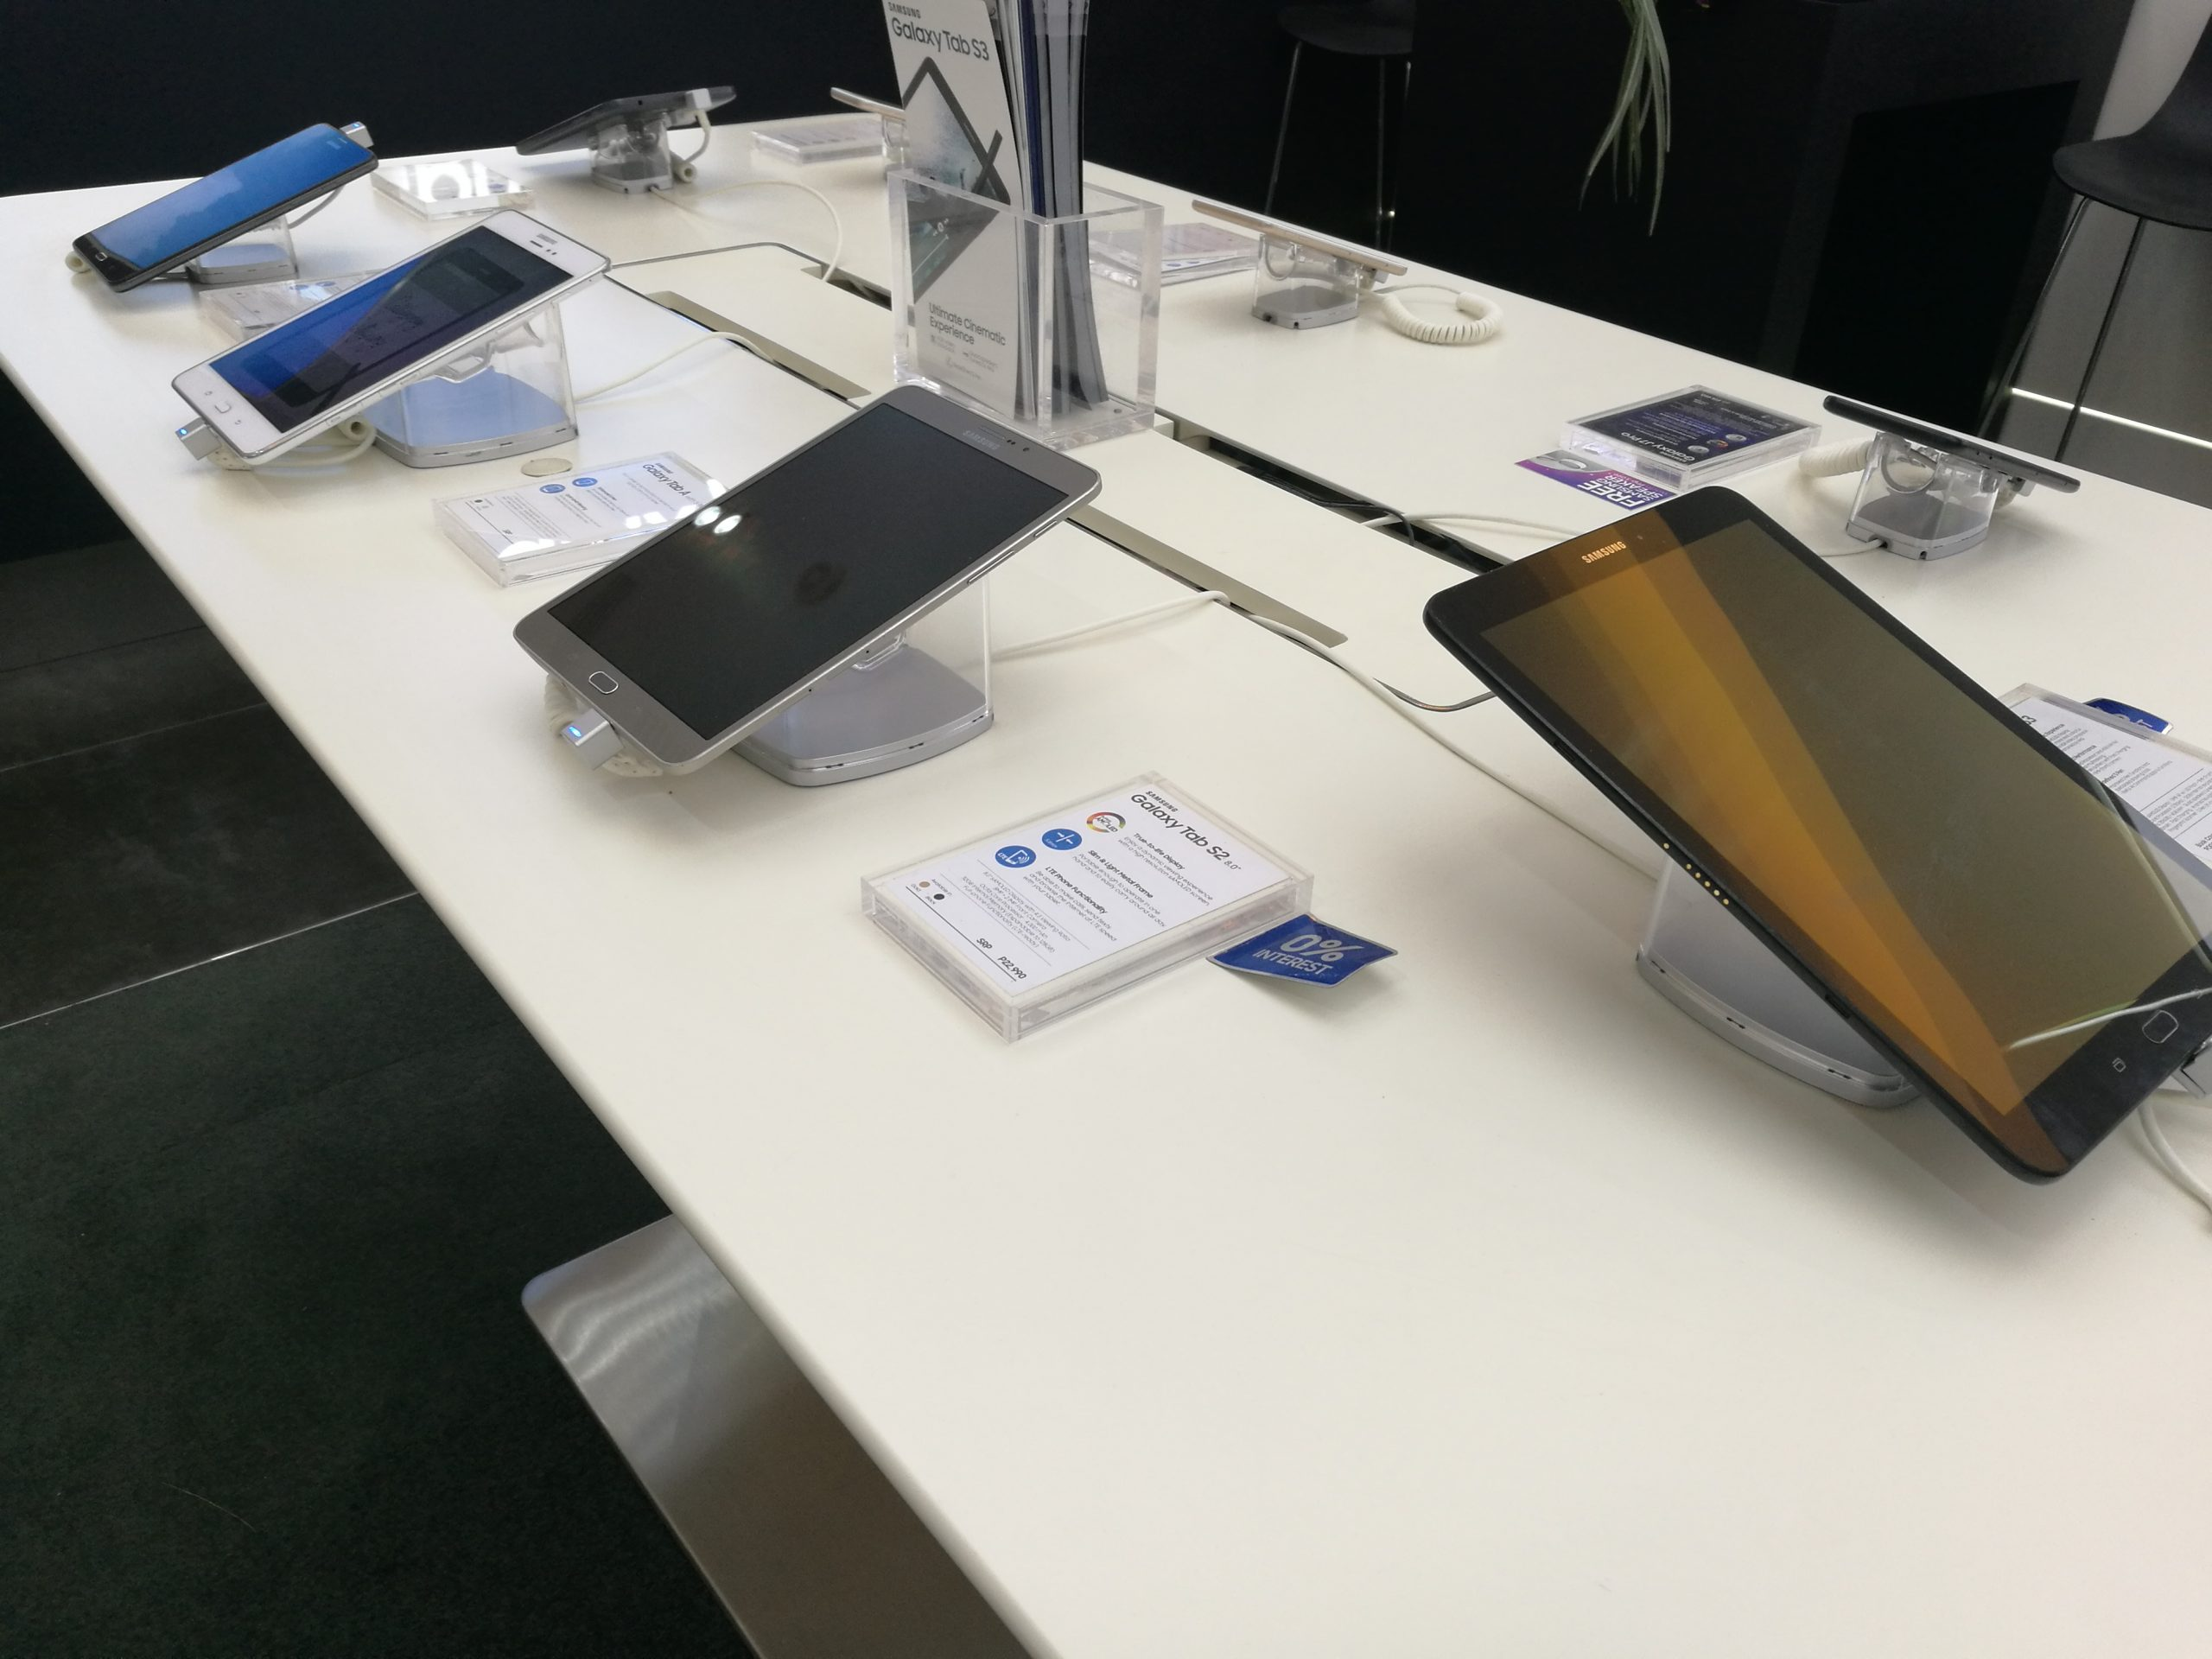 Samsung Experience Store 04